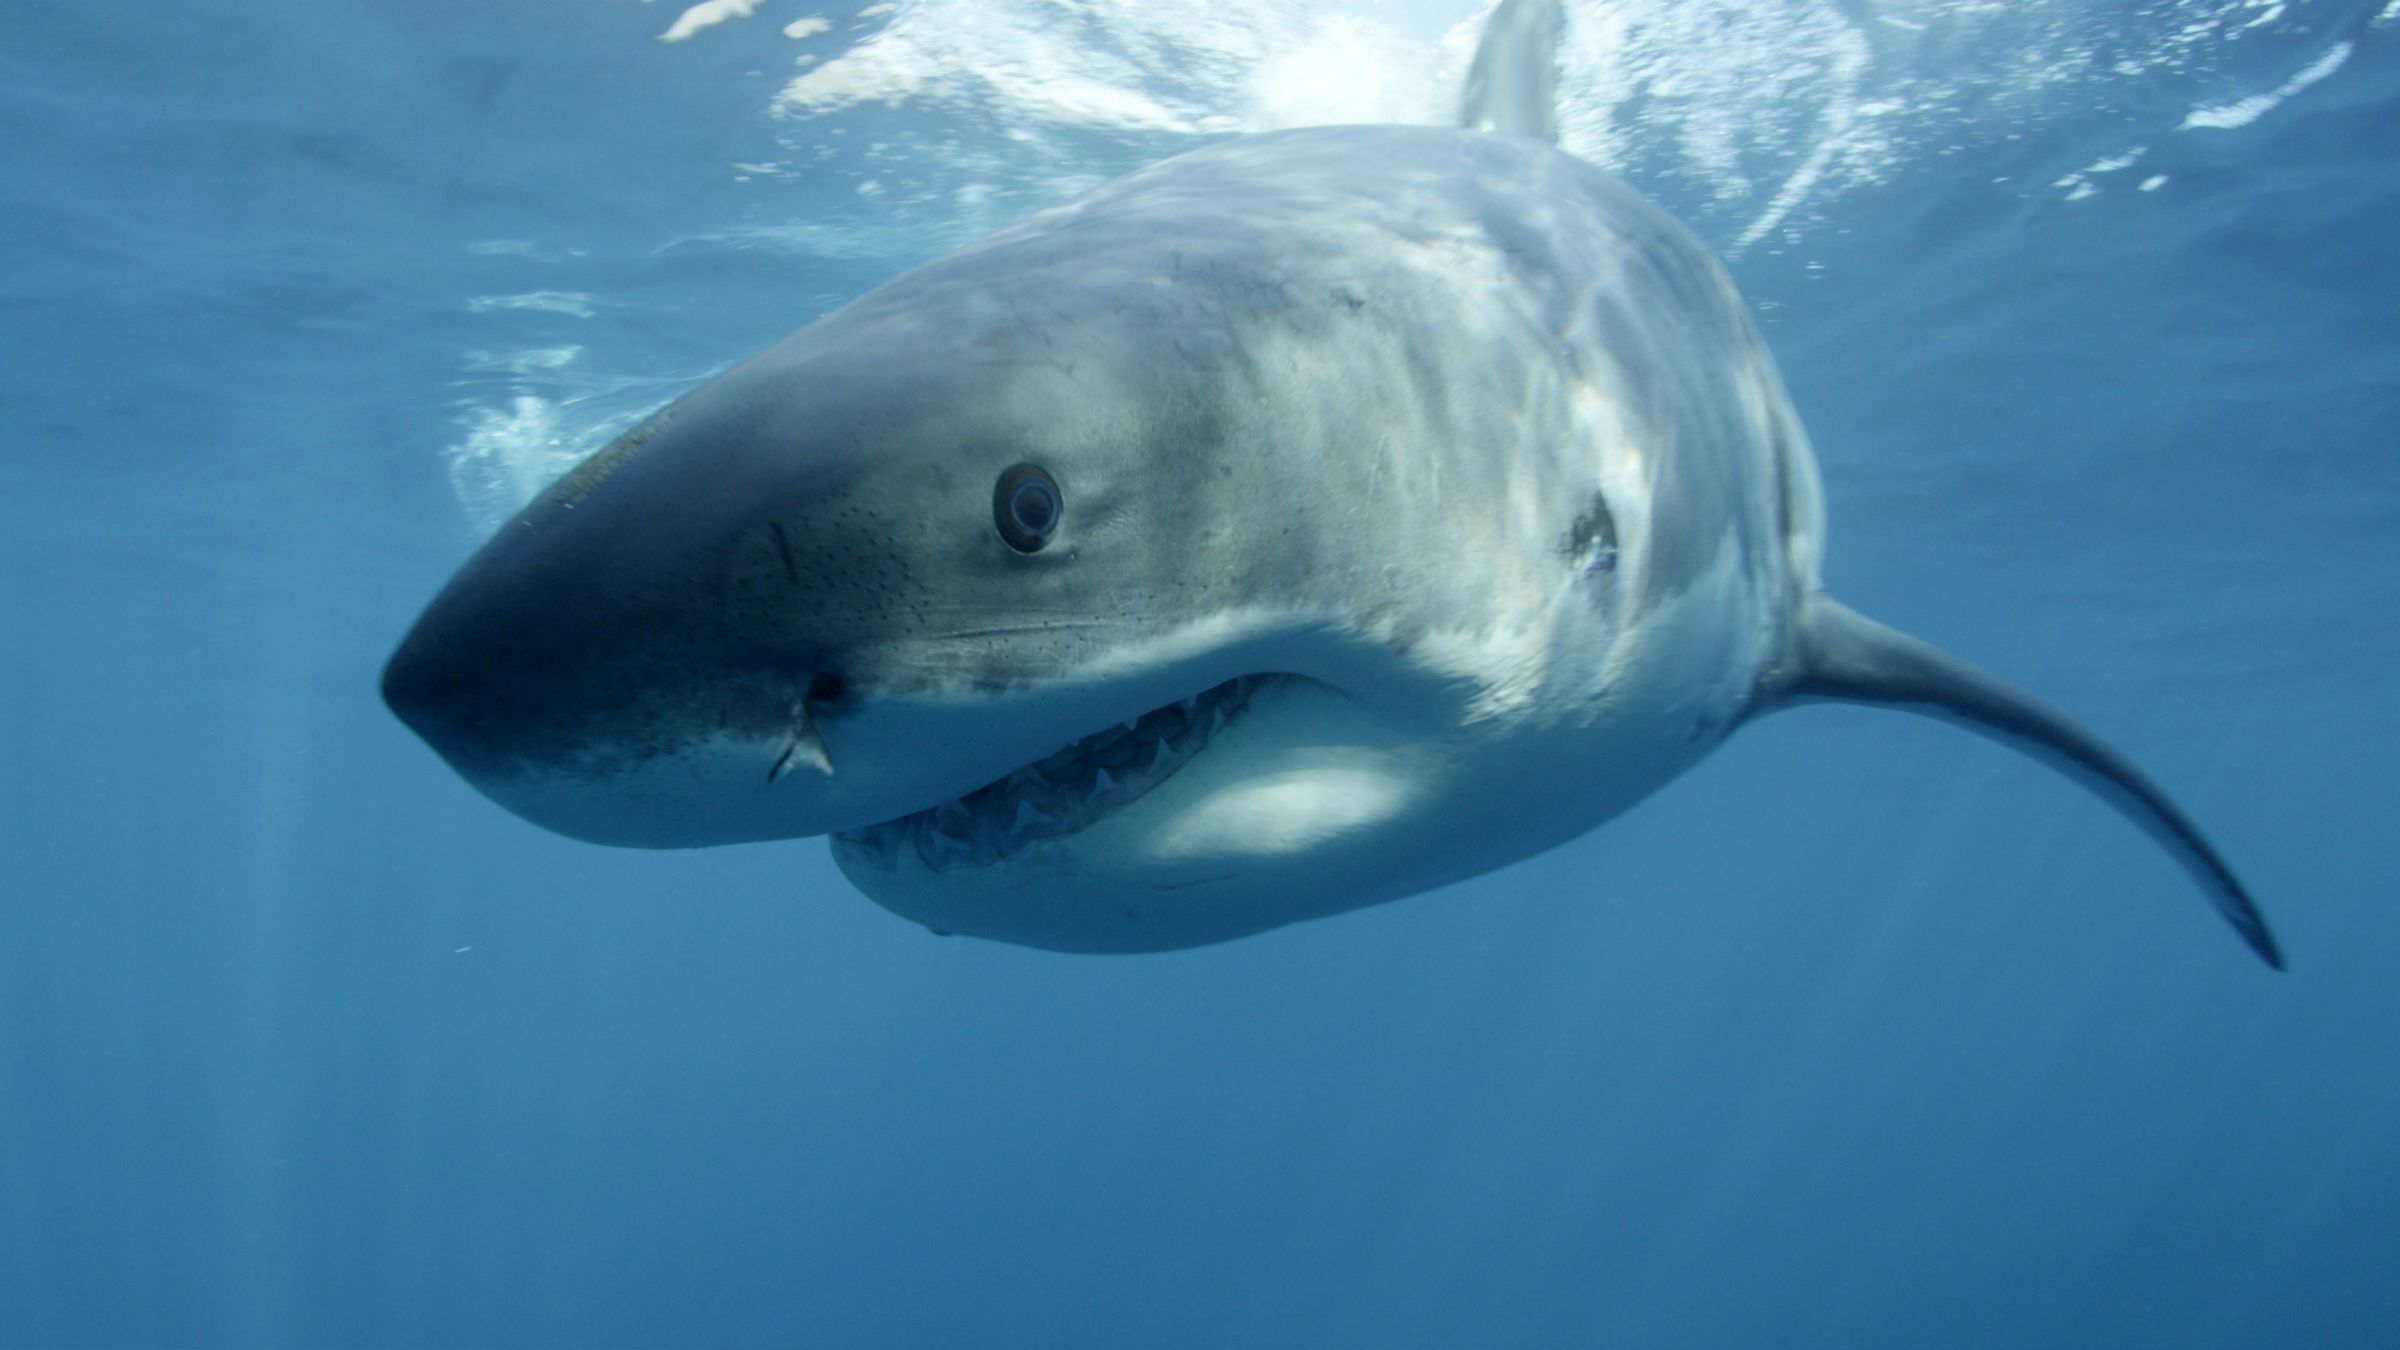 A great white shark swims near Guadalupe Island off the coast of Mexico.